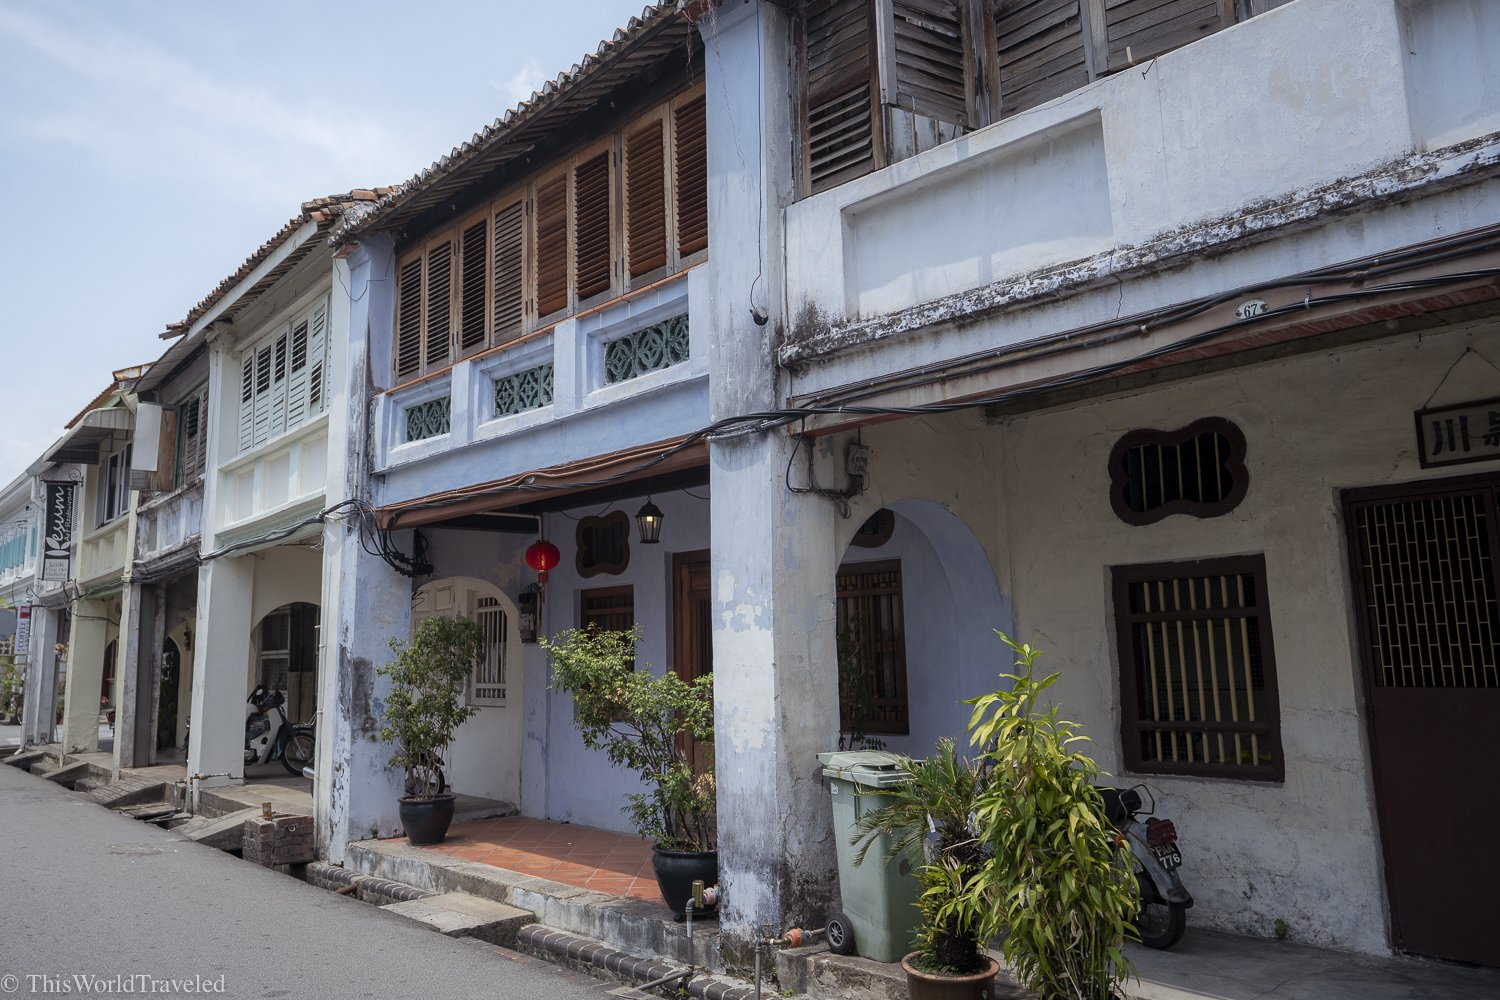 One of the streets in Penang with light blue walls and lanterns hanging